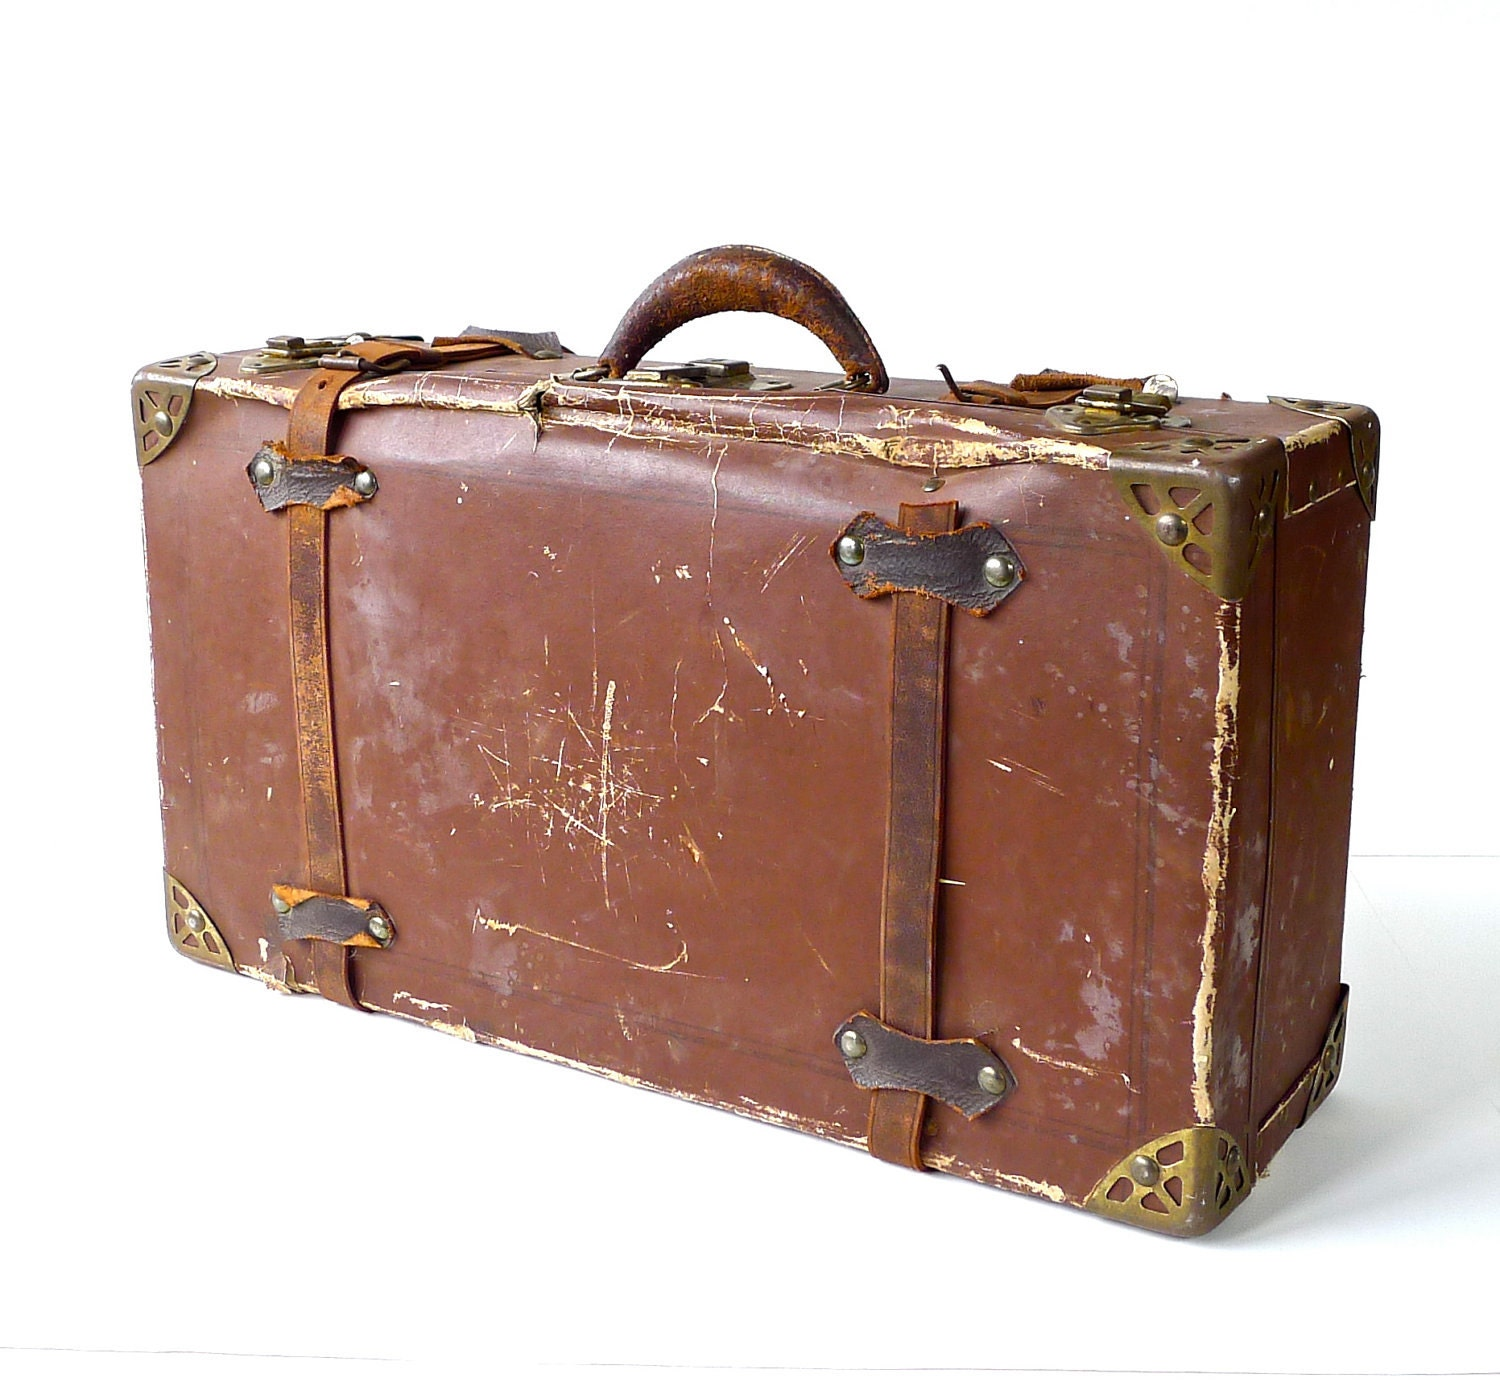 Antique cardboard poor man 39 s suitcase - Vintage suitcase ...